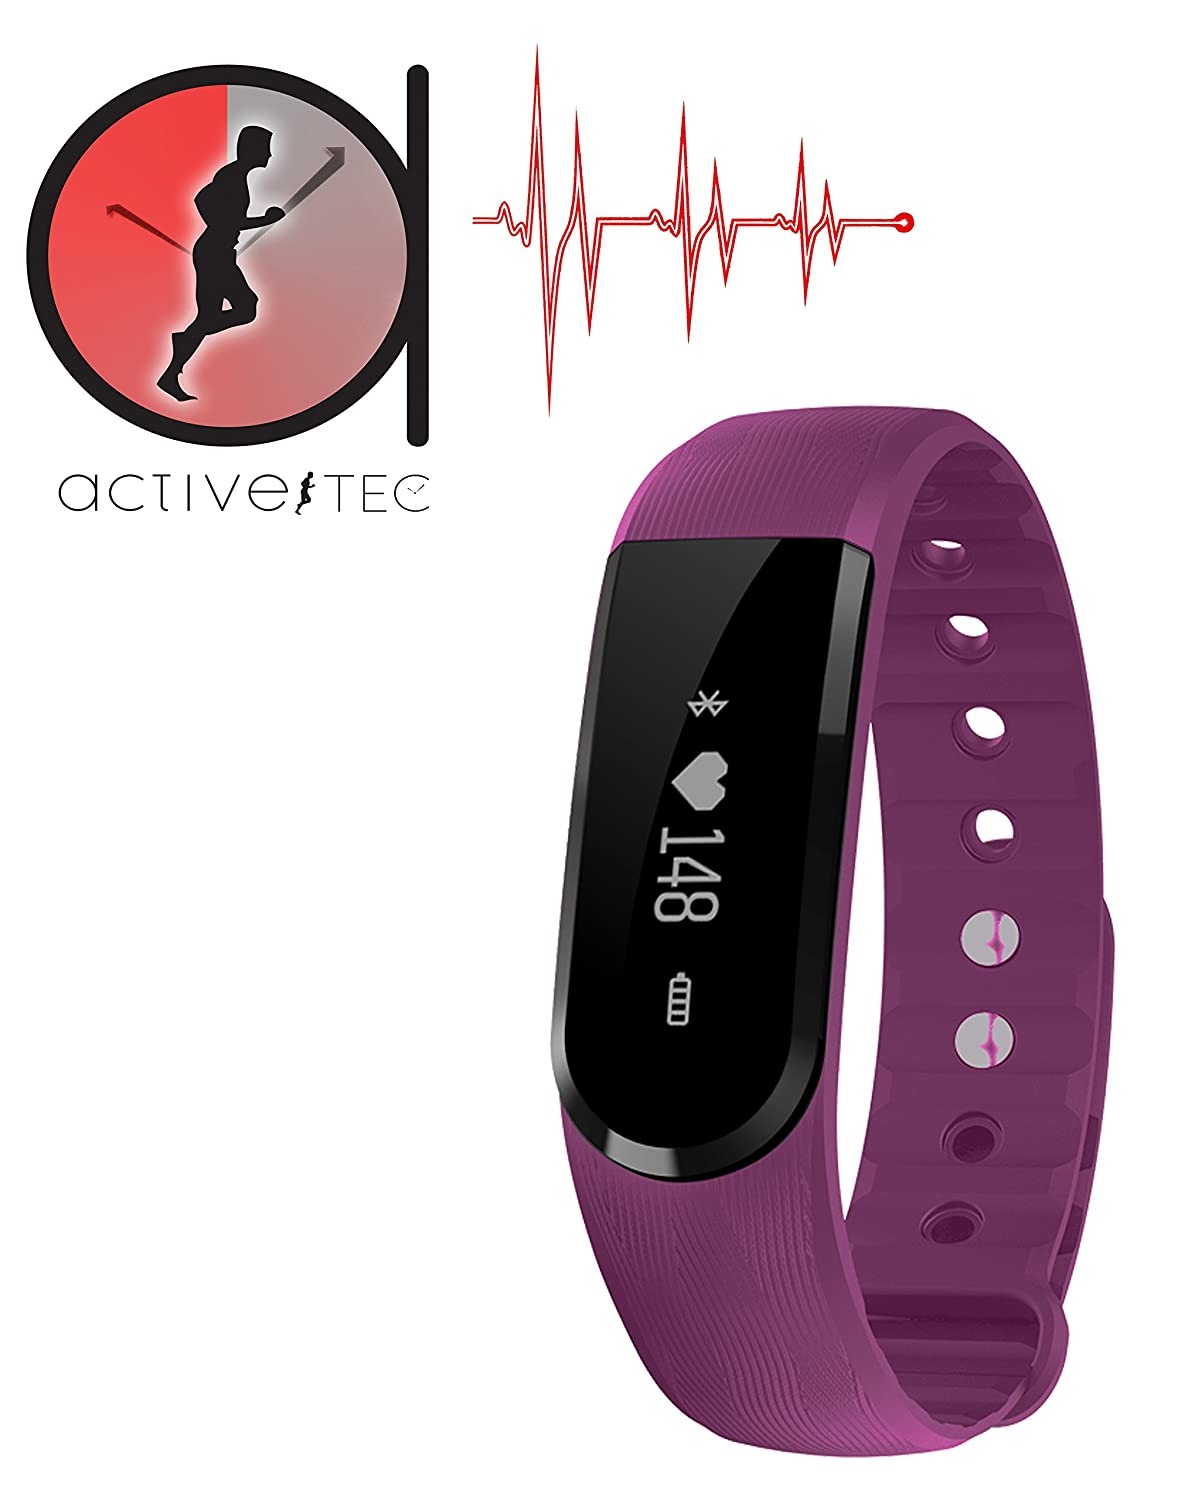 ActiveTec Heart Rate Activity Tracker – Bluetooth Wireless Pedometer Sleep Heart Rate Monitoring Sport Activity Tracker Android iPhone